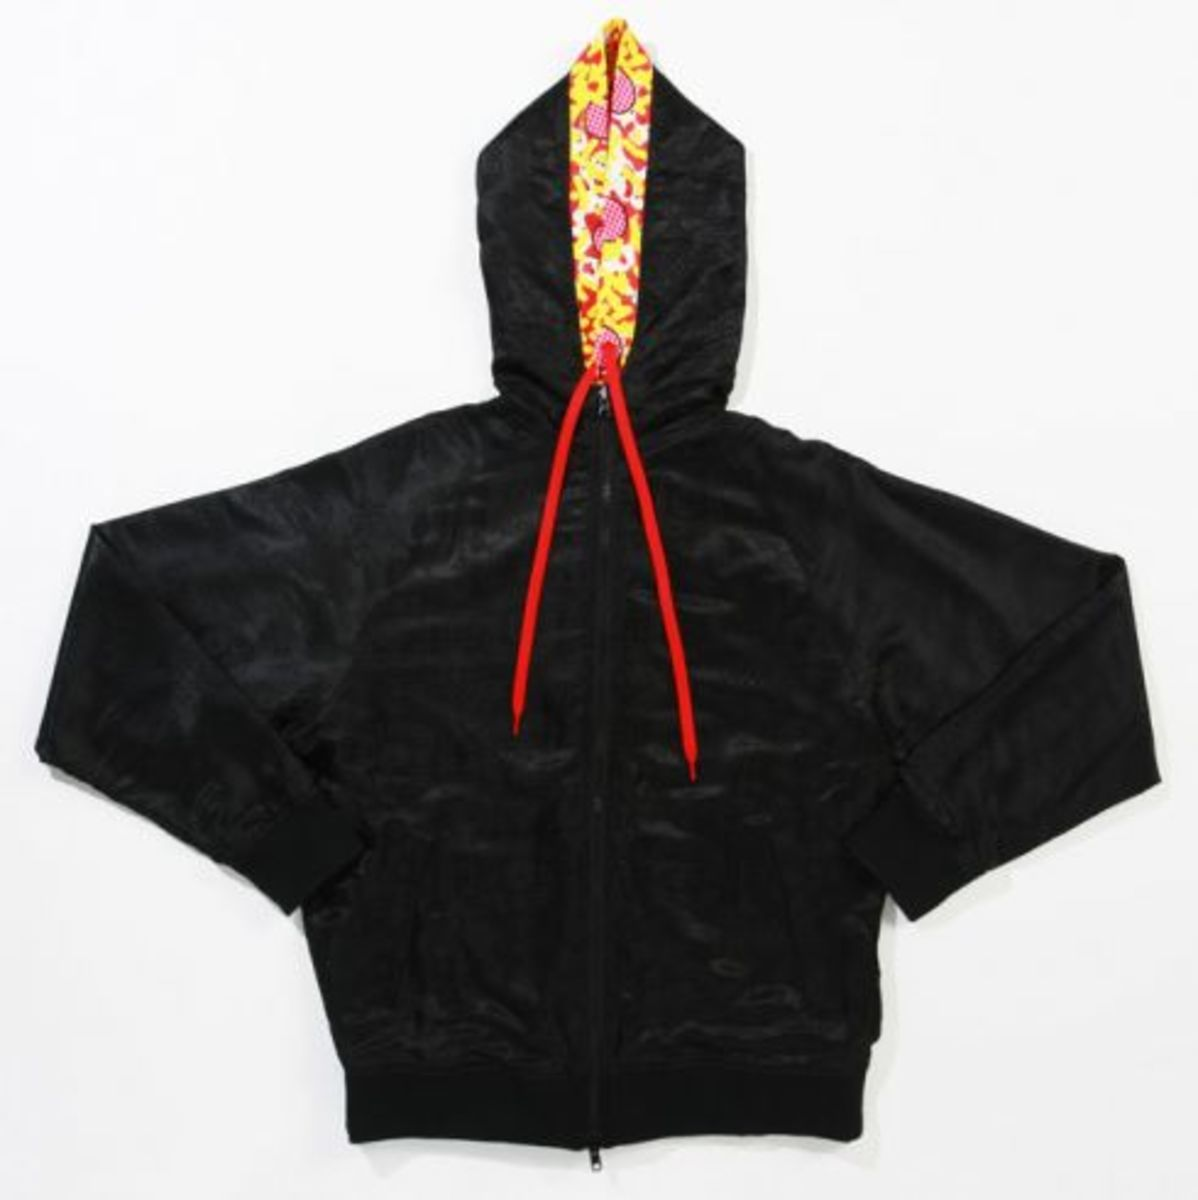 Perks And Mini (P.A.M.) x CLOT - Pizza Party Jacket (Update) - 0